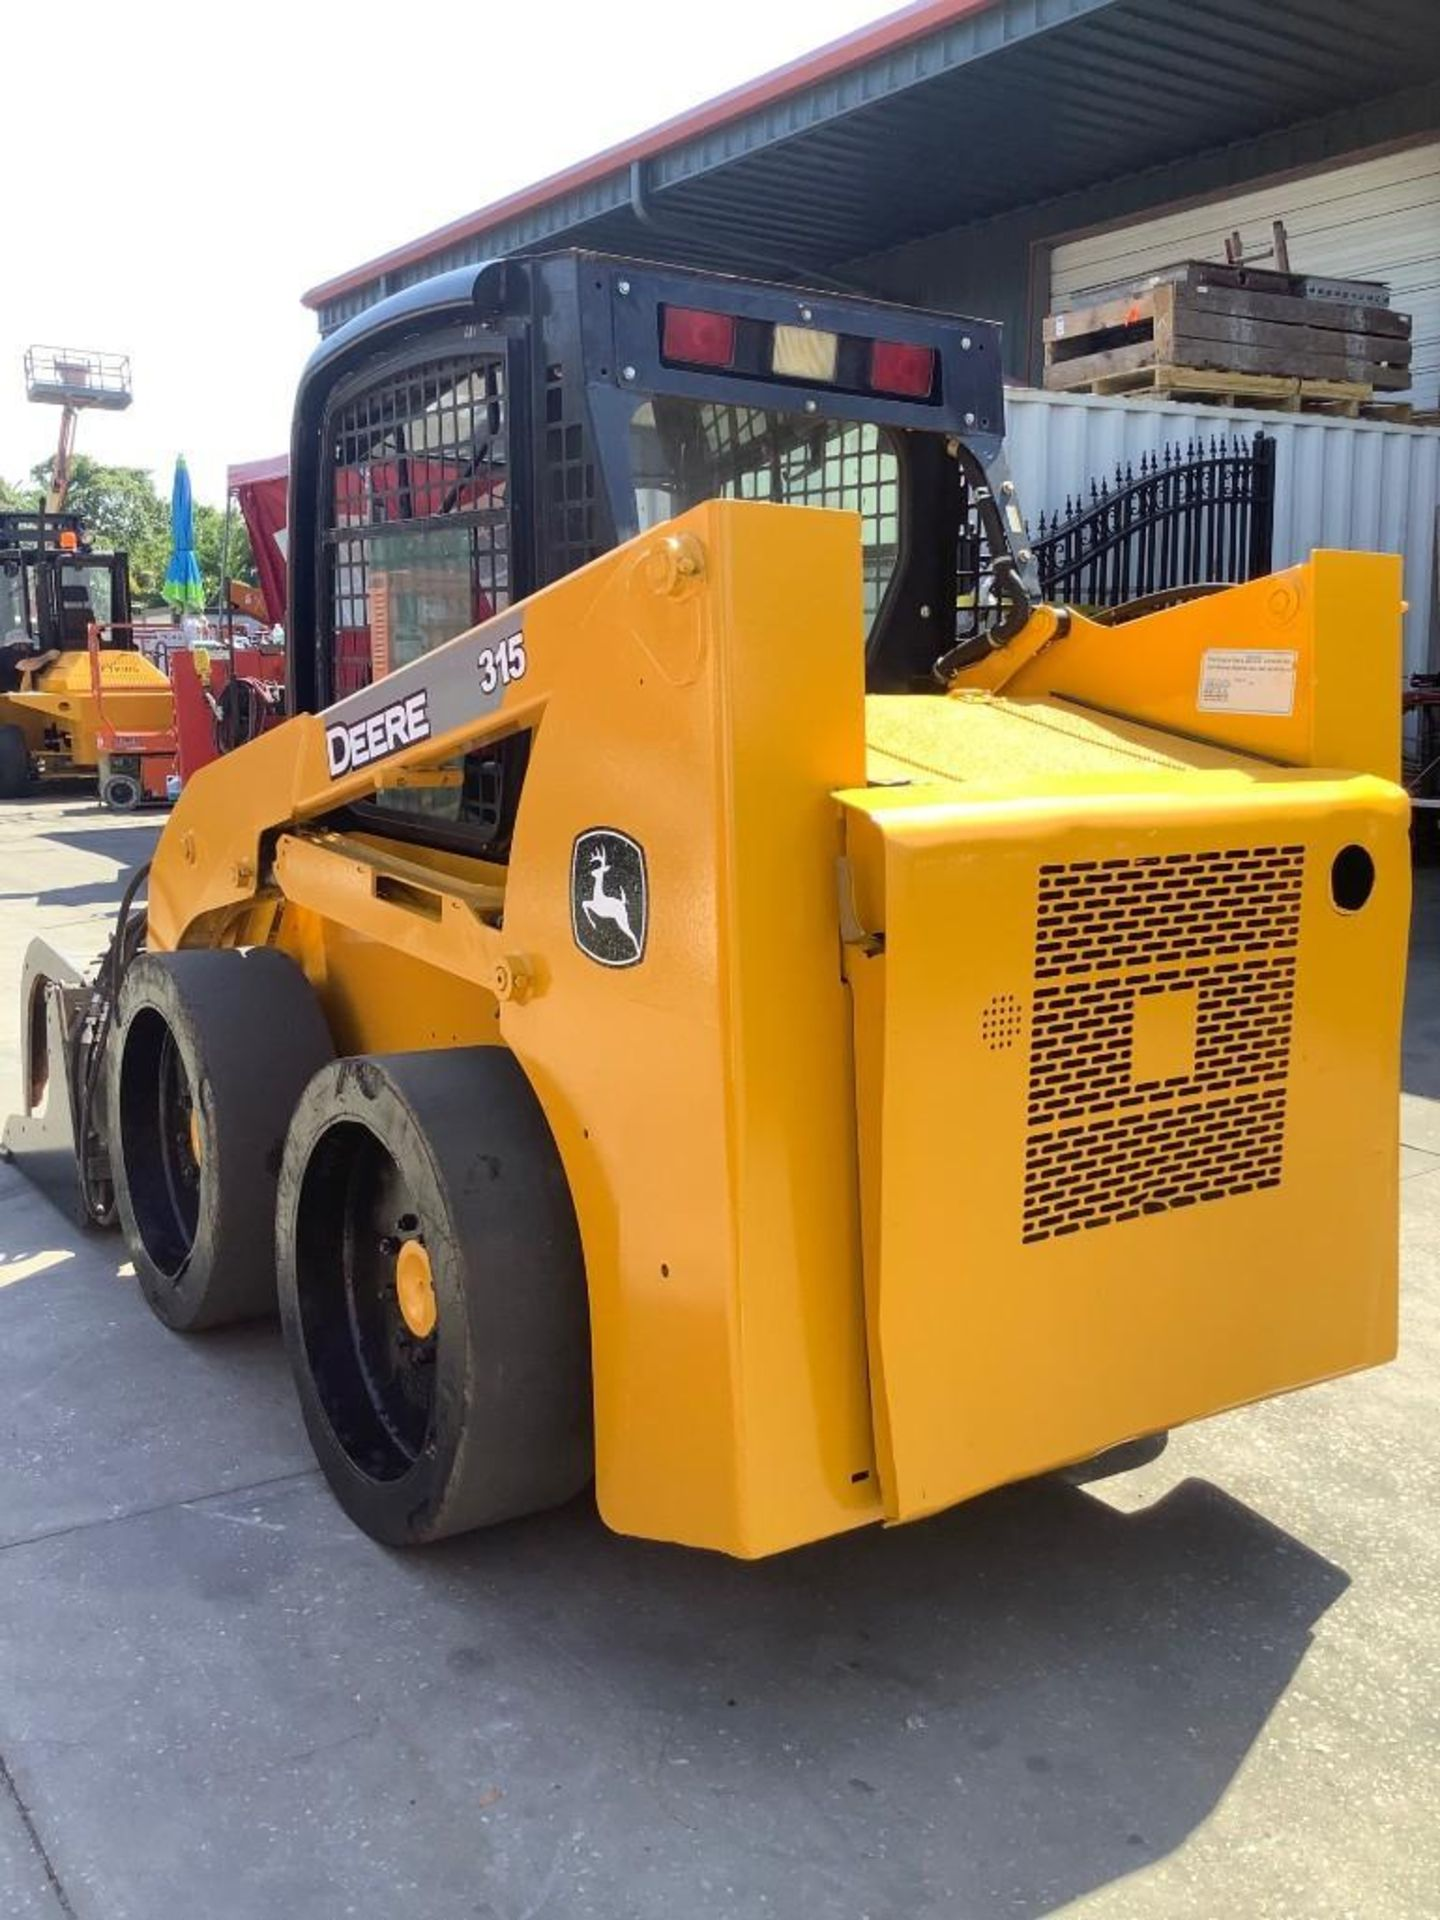 JOHN DEERE SKIDSTEER MODEL 315, DIESEL, GRAPPLE ATTACHMENT, SOLID TIRES, AUX HYDRAULIC, ENCLOSED CAB - Image 6 of 15